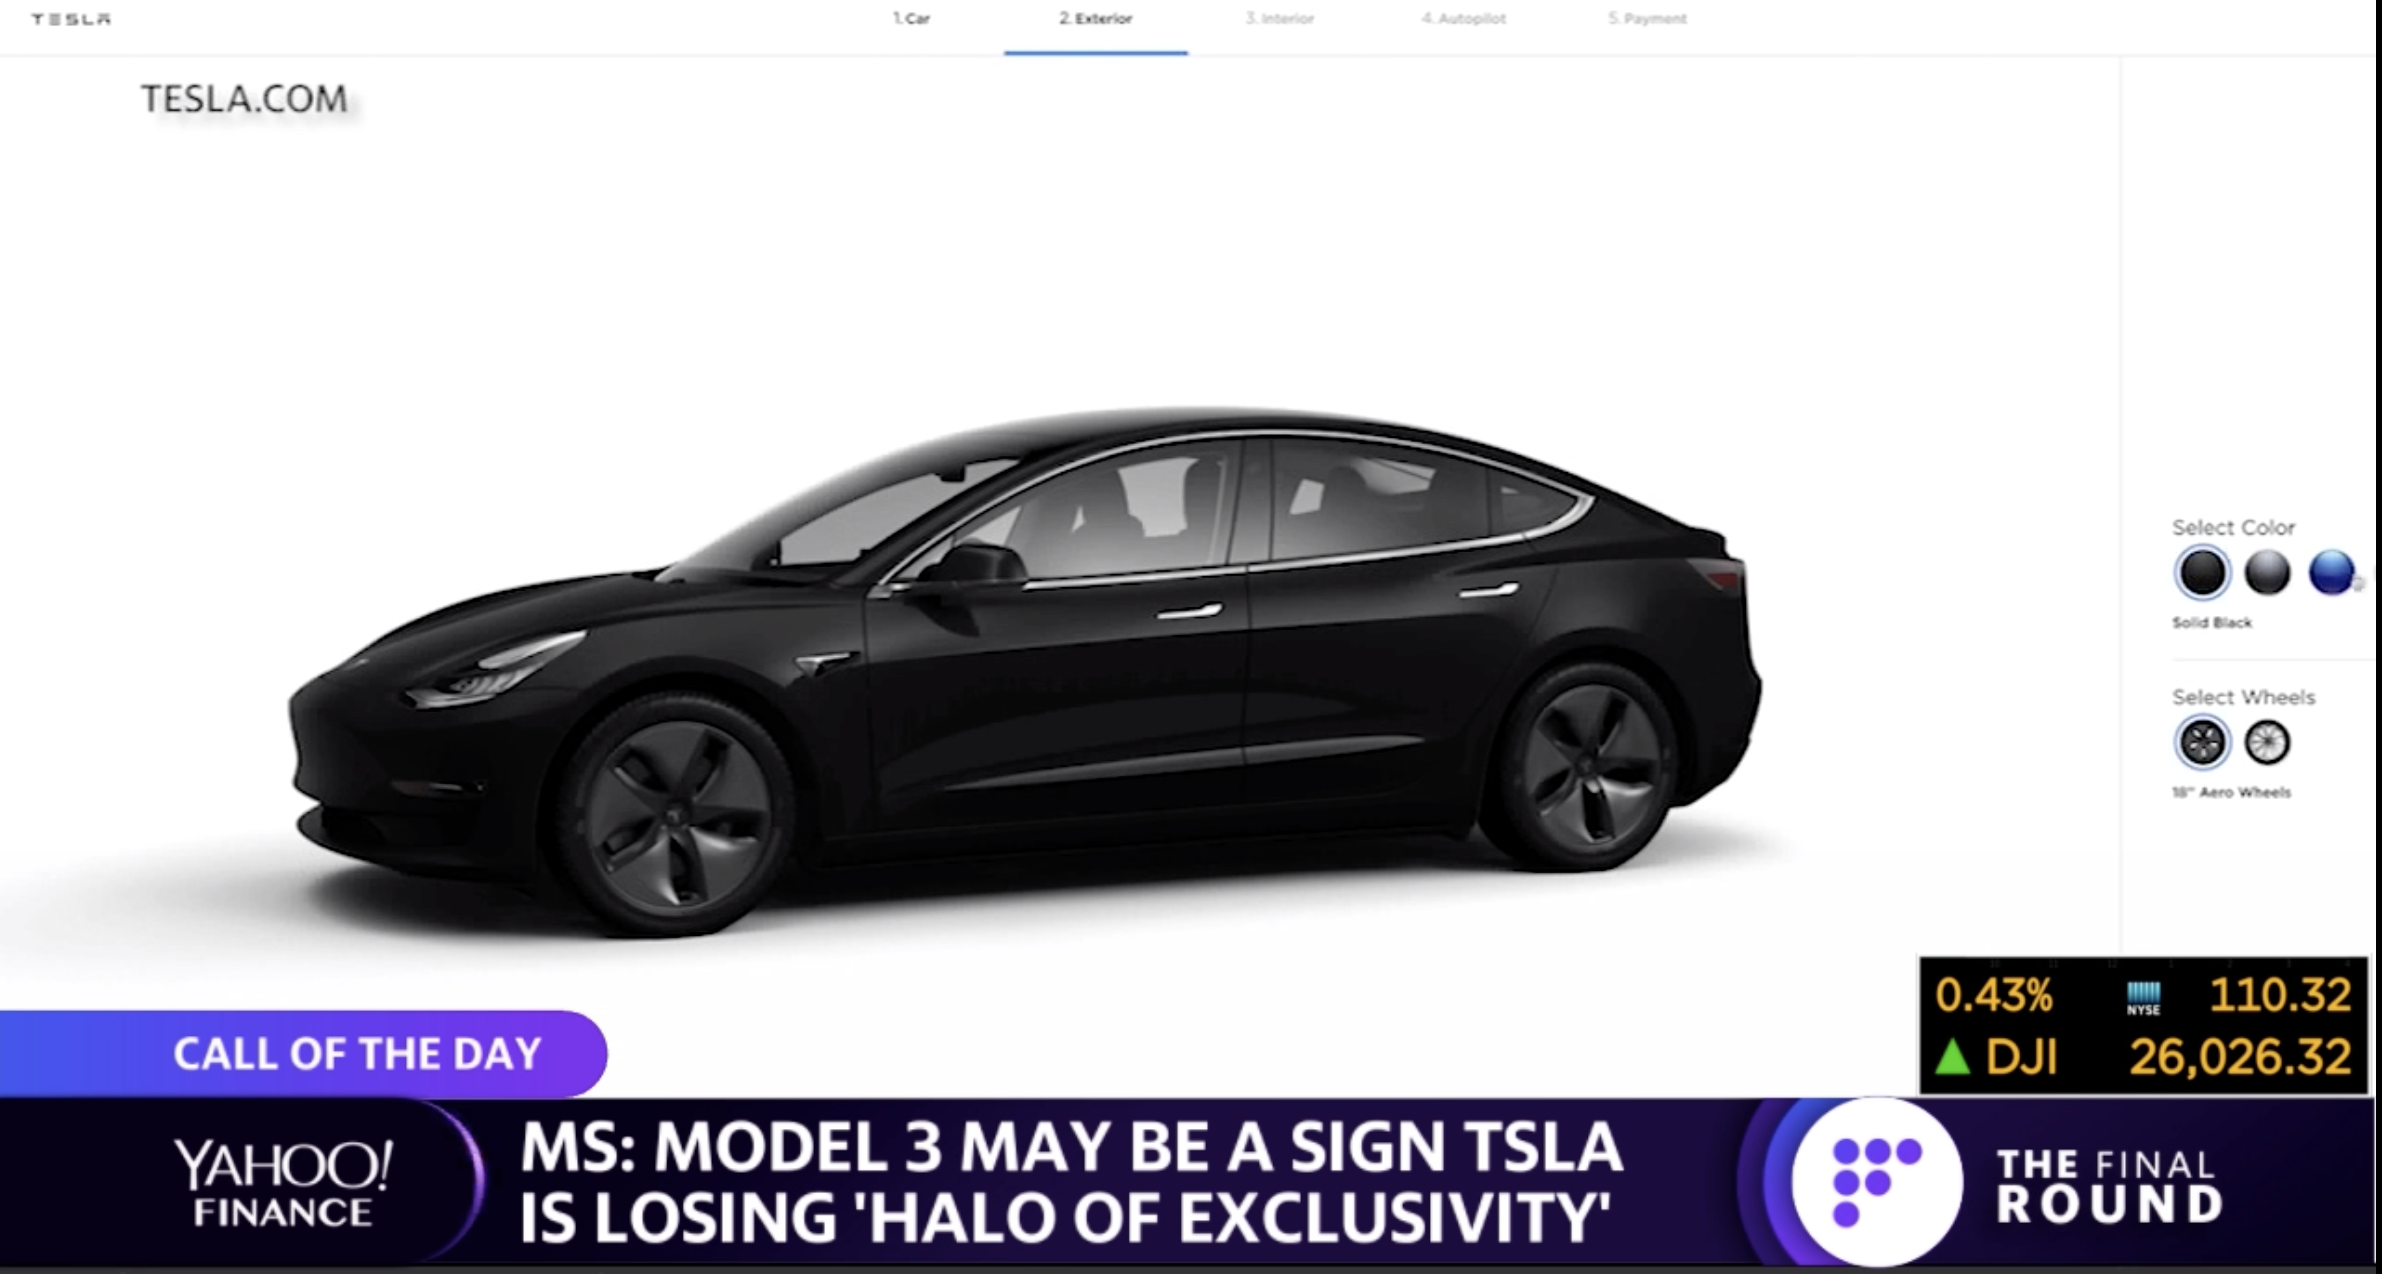 74d659a89 Wall Street analysts mixed on tesla model 3 announcement [Video]